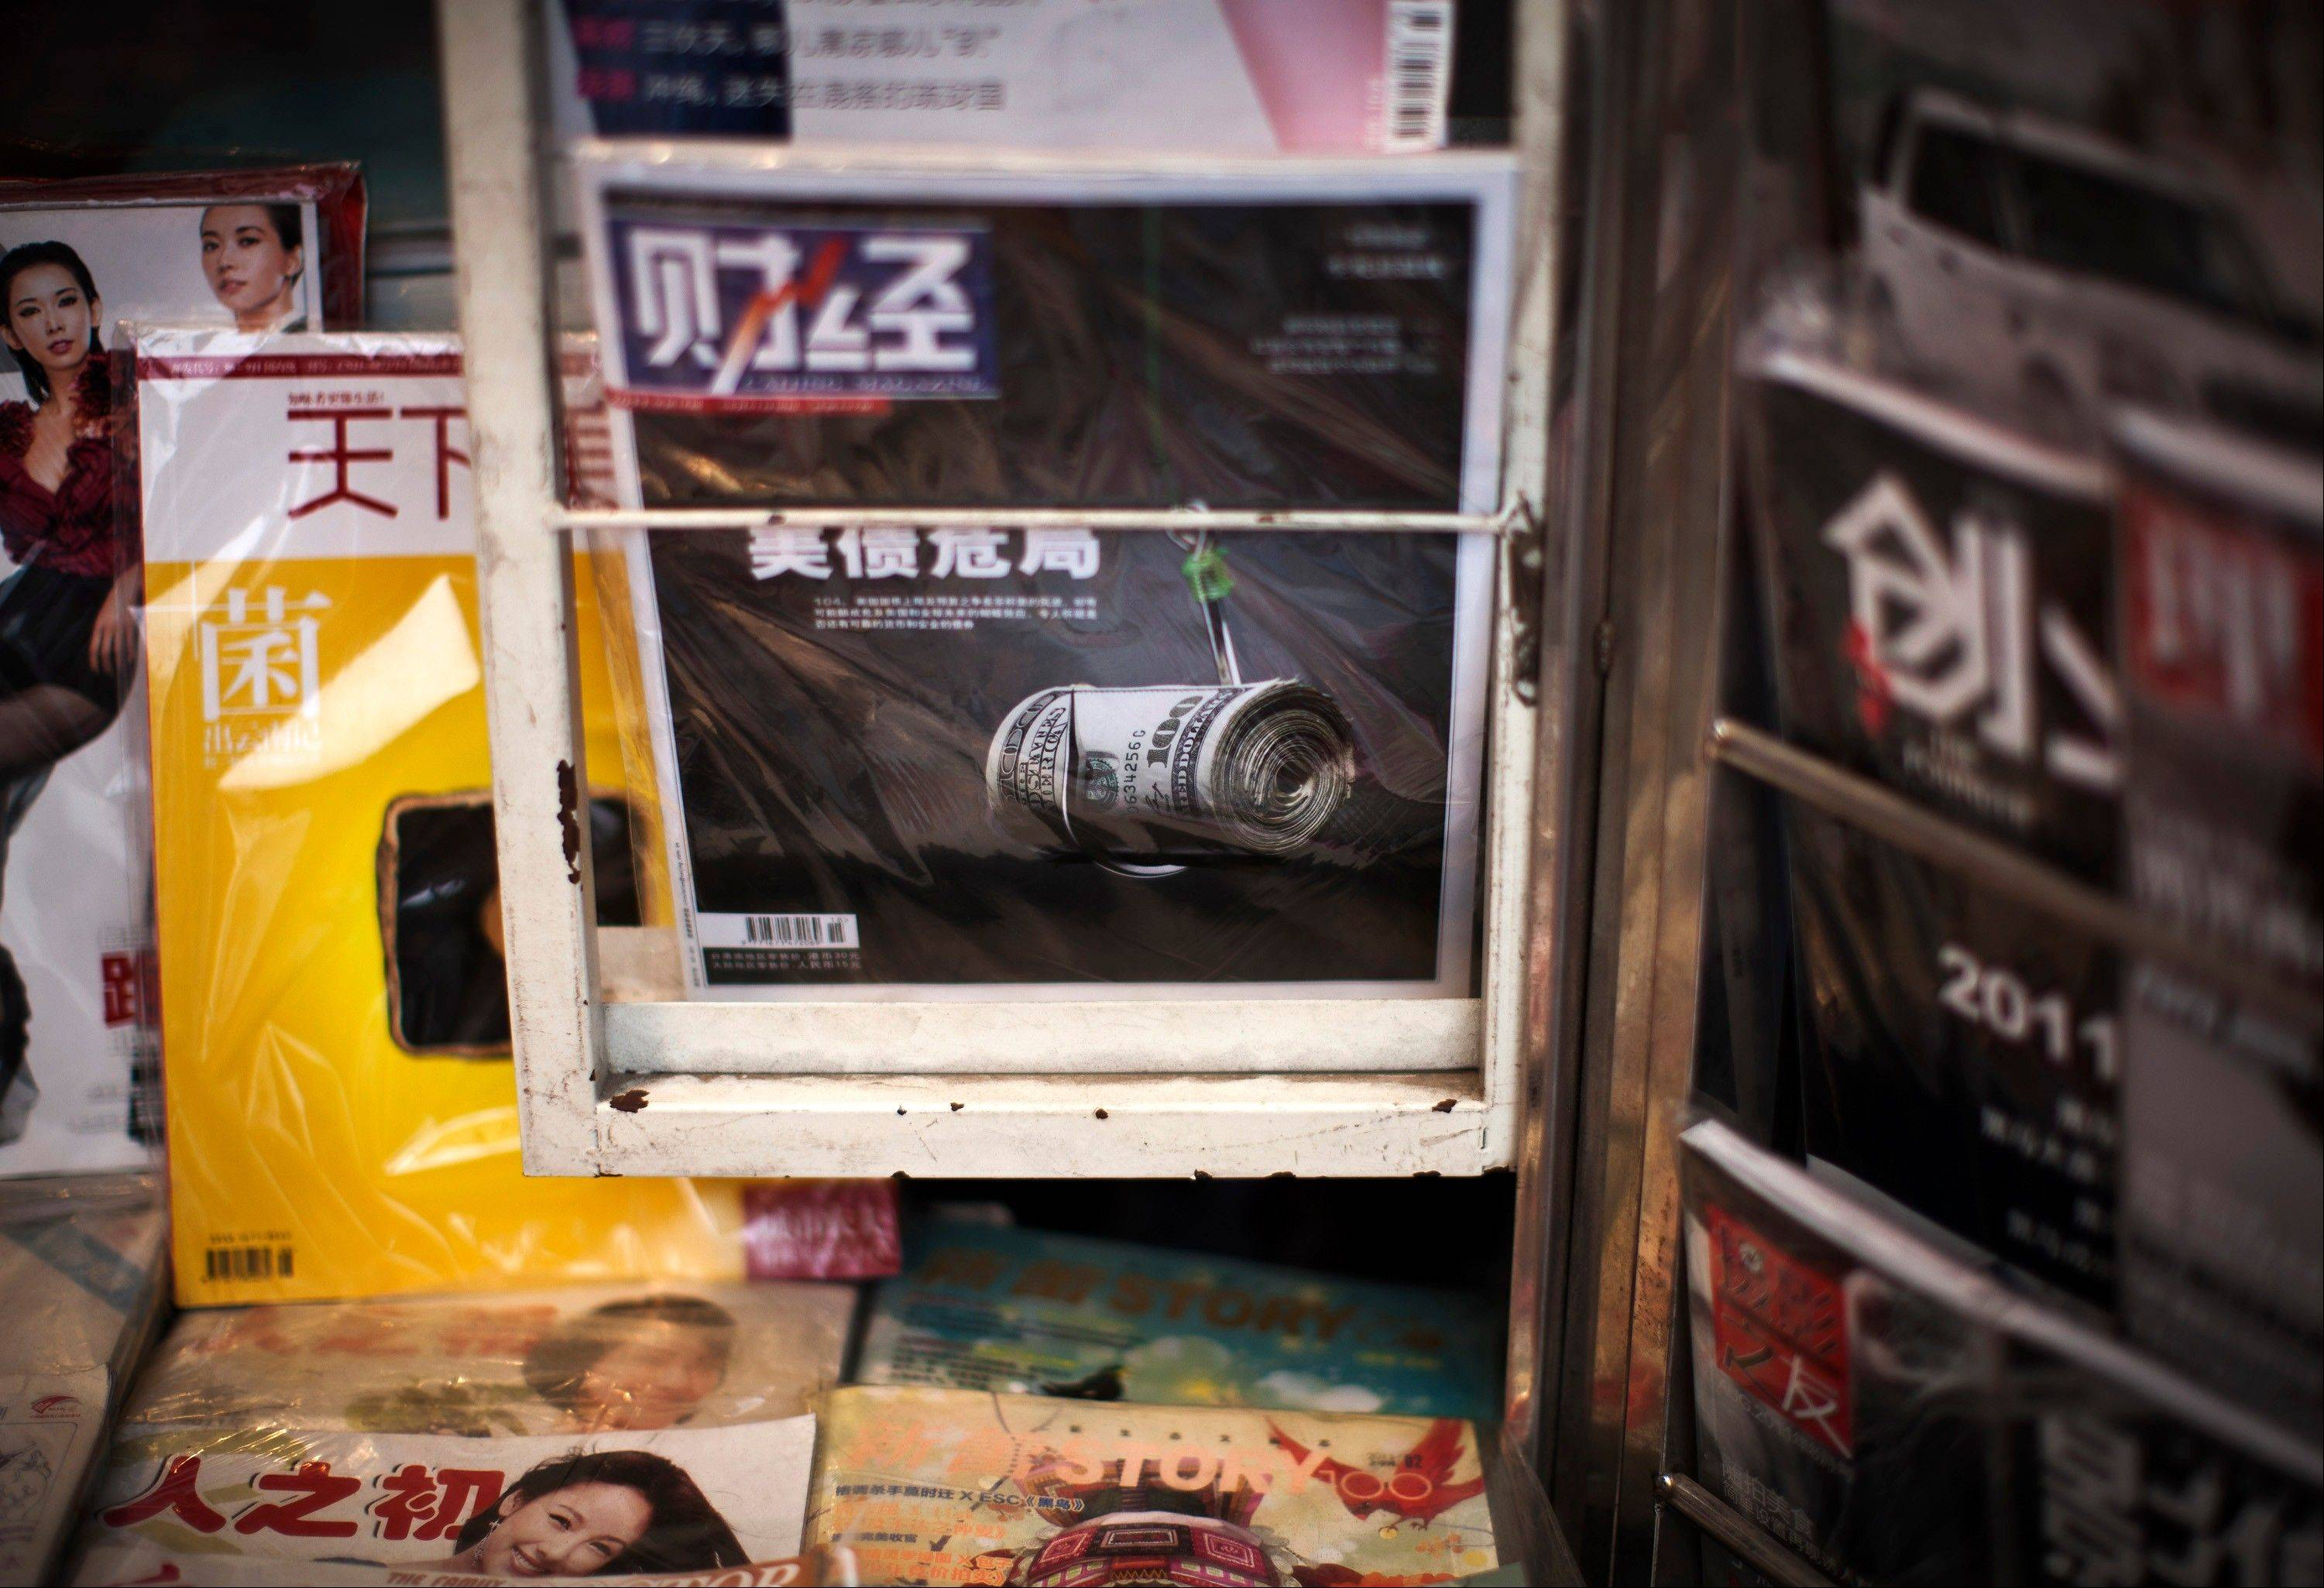 A copy of Chinese financial magazine featuring the U.S. debt crisis, center, is on sale at a newsstand in Beijing Monday. China, the largest foreign holder of U.S. debt, demanded Saturday America tighten its belt and confront its �addiction to debts.�